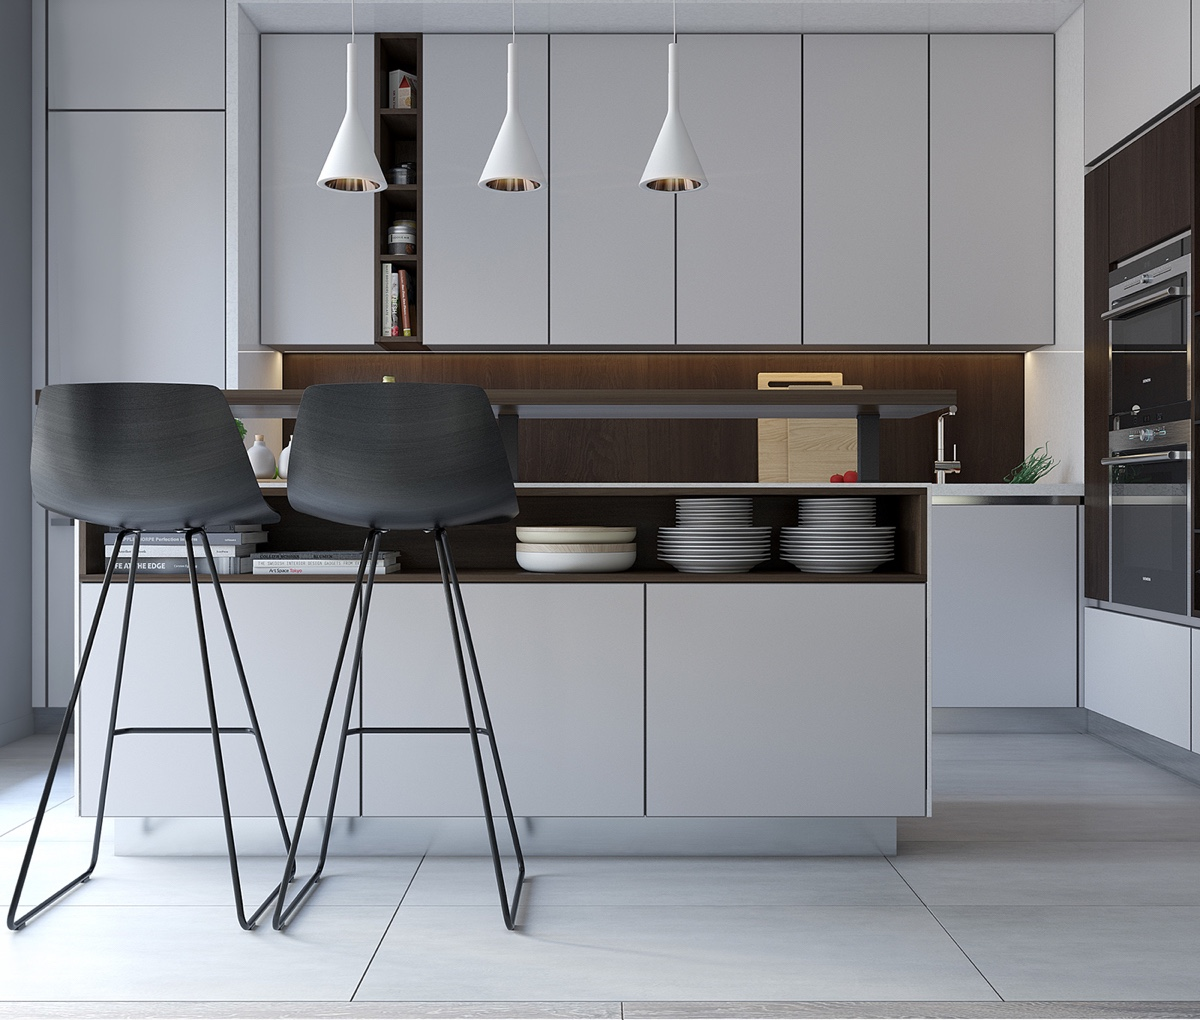 Black Pod Stools Contemporary Grey Kitchen - Spacious looking one bedroom apartment with dark wood accents